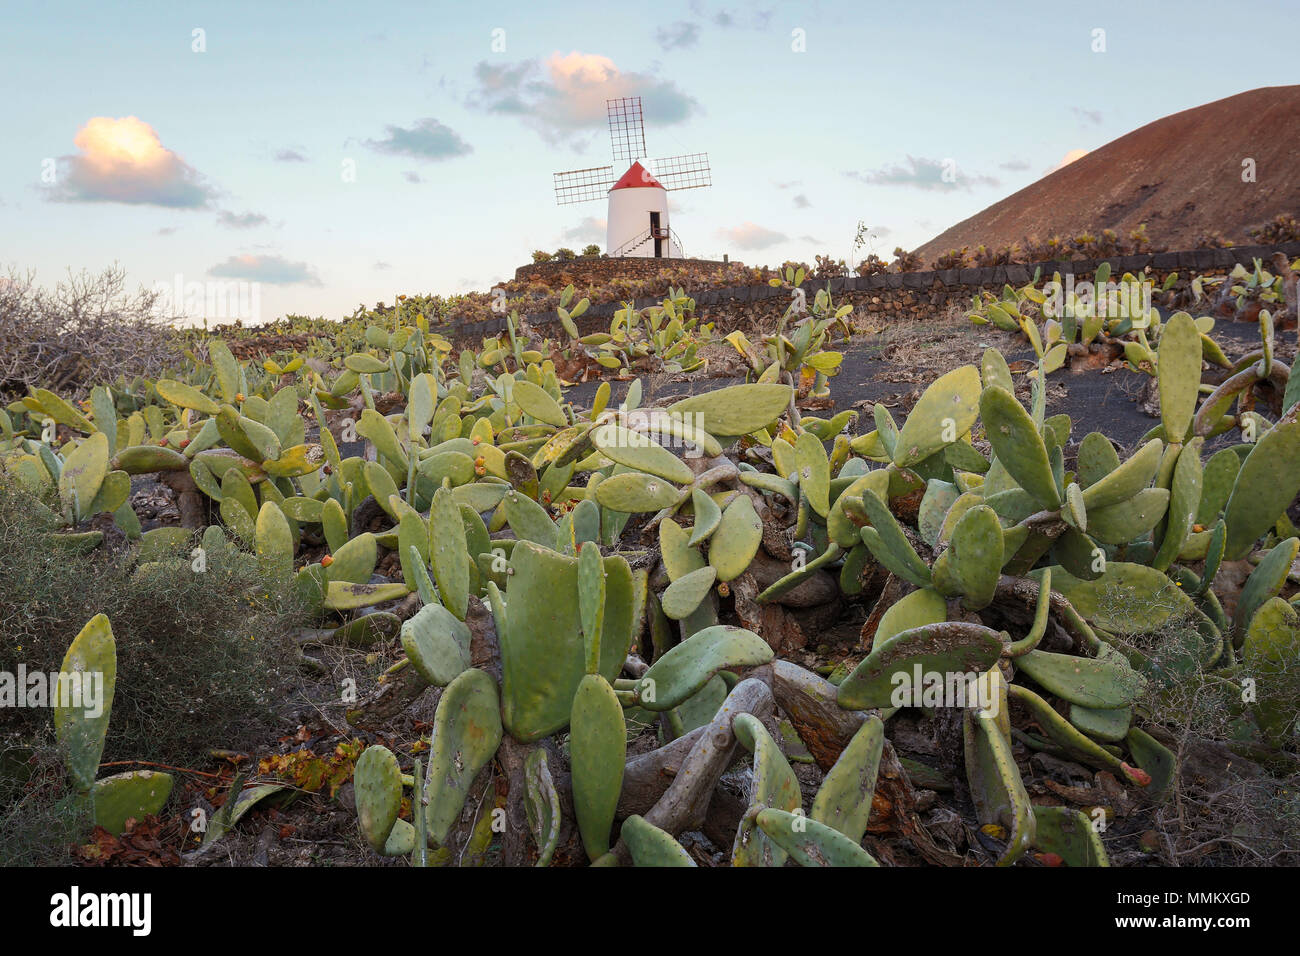 LANZAROTE, CANARY ISLANDS, SPAIN, EUROPE: Cochnieal farm - a field of cacti with the windmill of the Cactus Garden in the background. - Stock Image